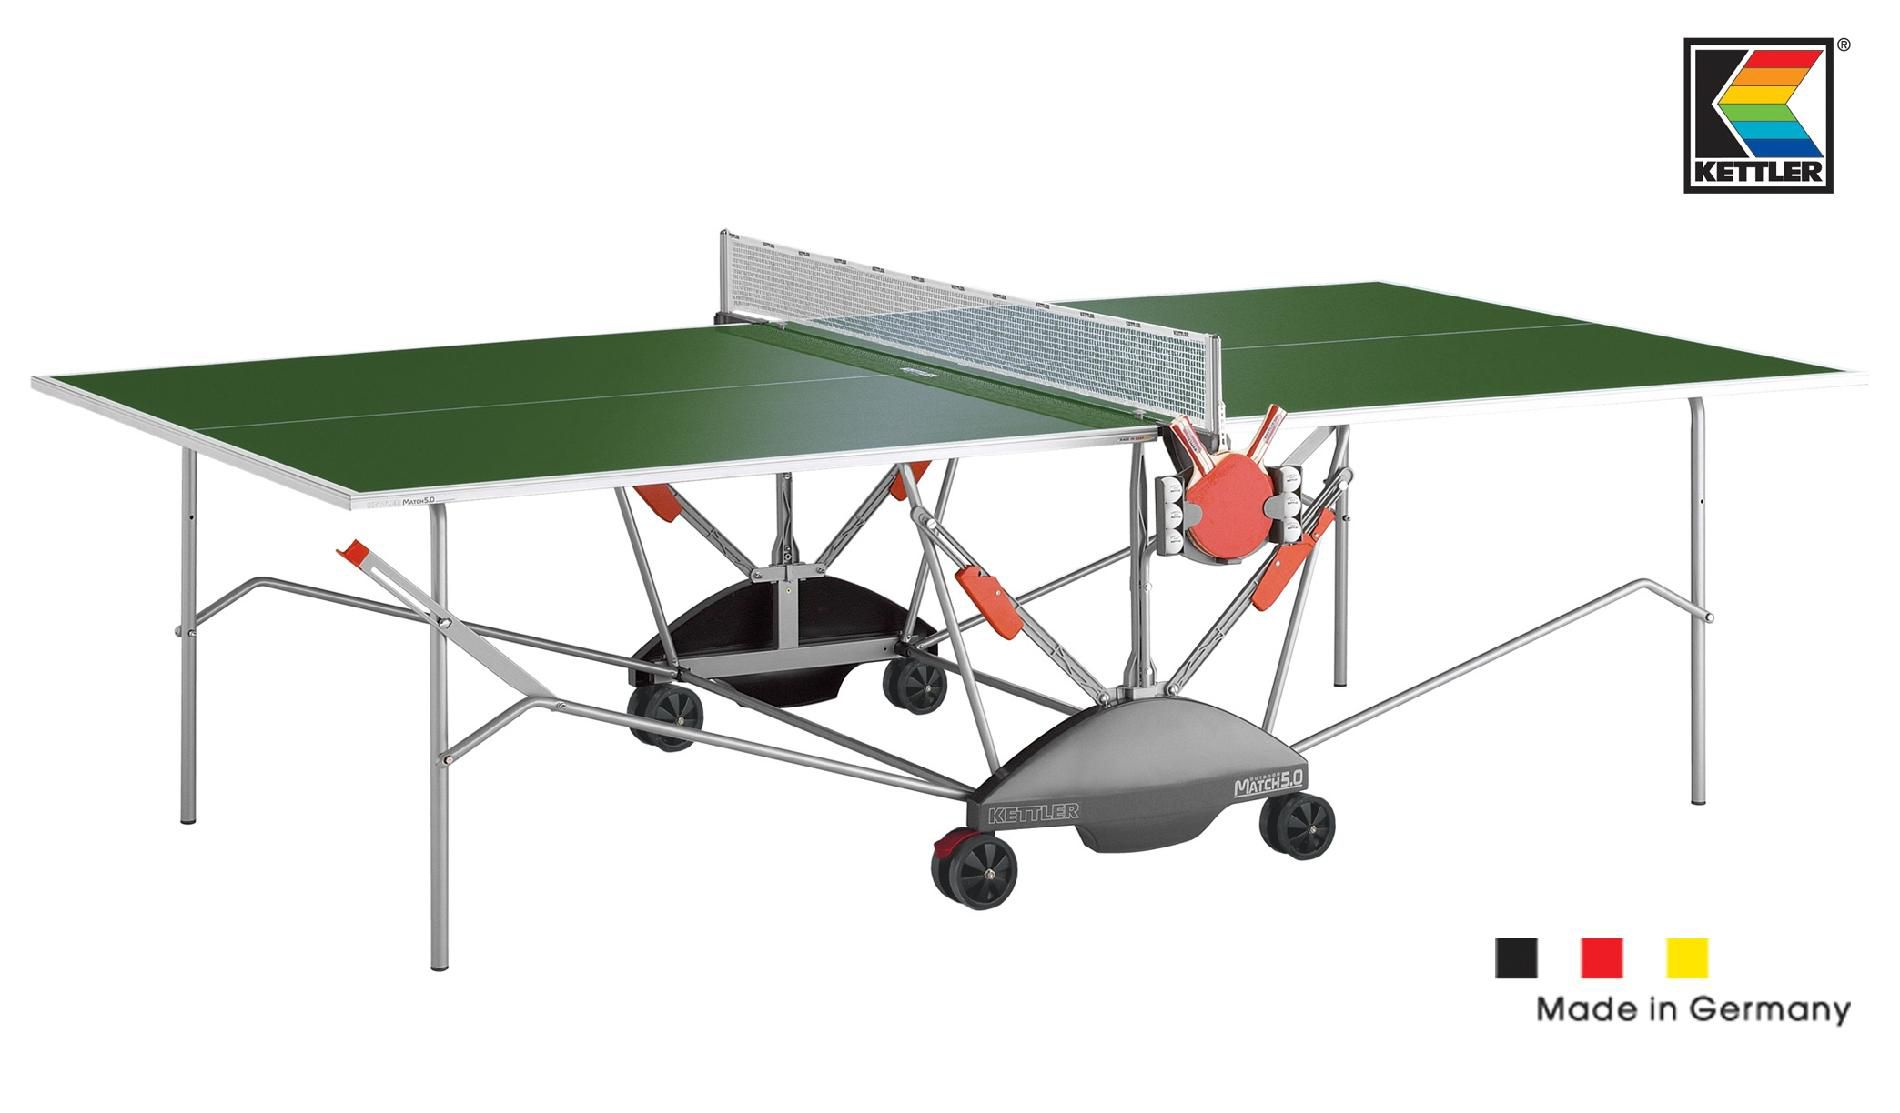 Buy table tennis outdoors kettler - Kettler® Match 5.0 Outdoor Green Table Tennis